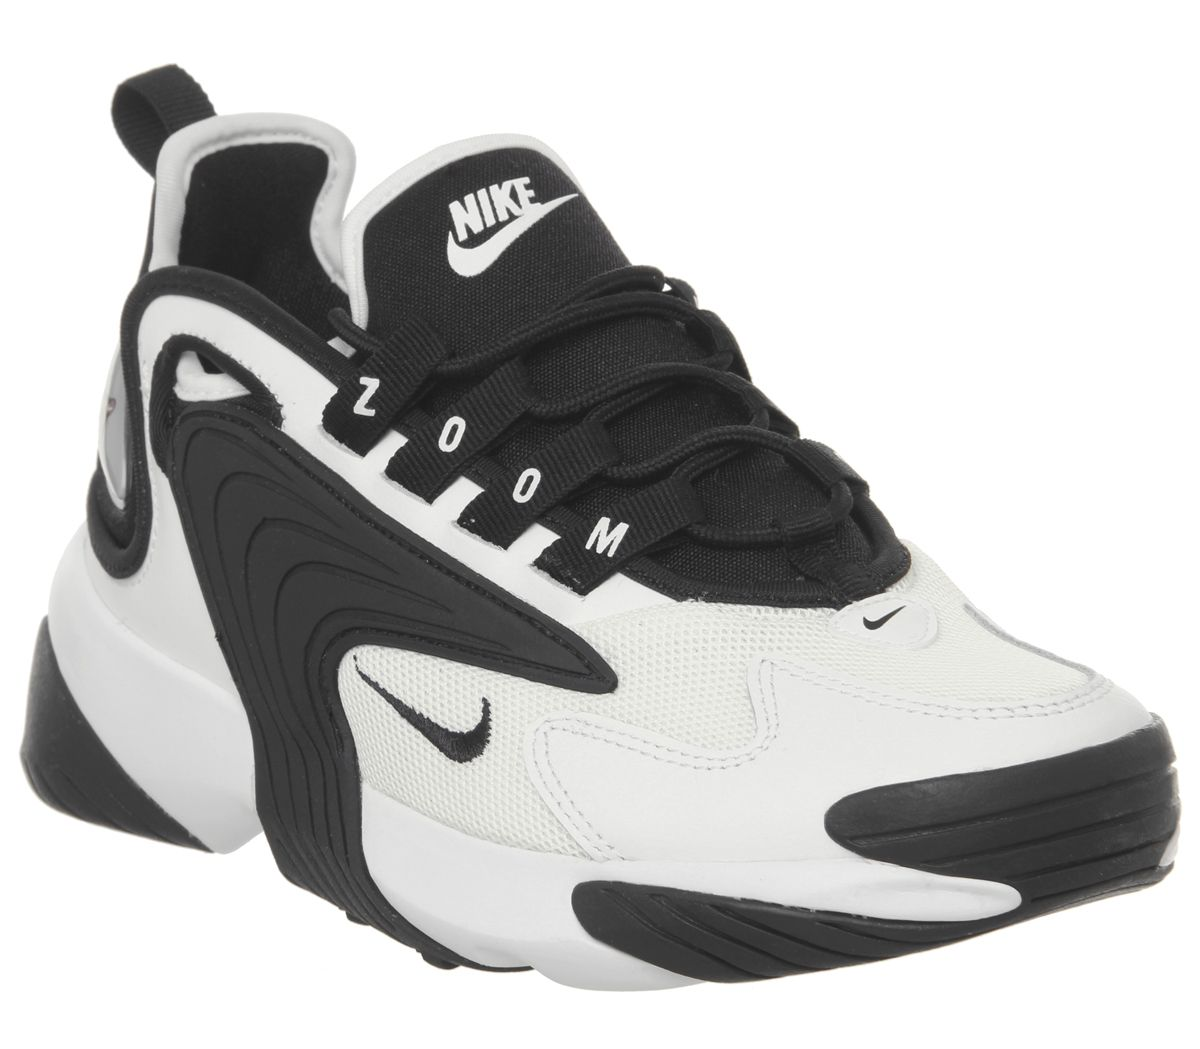 2385551dca Nike Zoom 2K Trainers White Black - Hers trainers